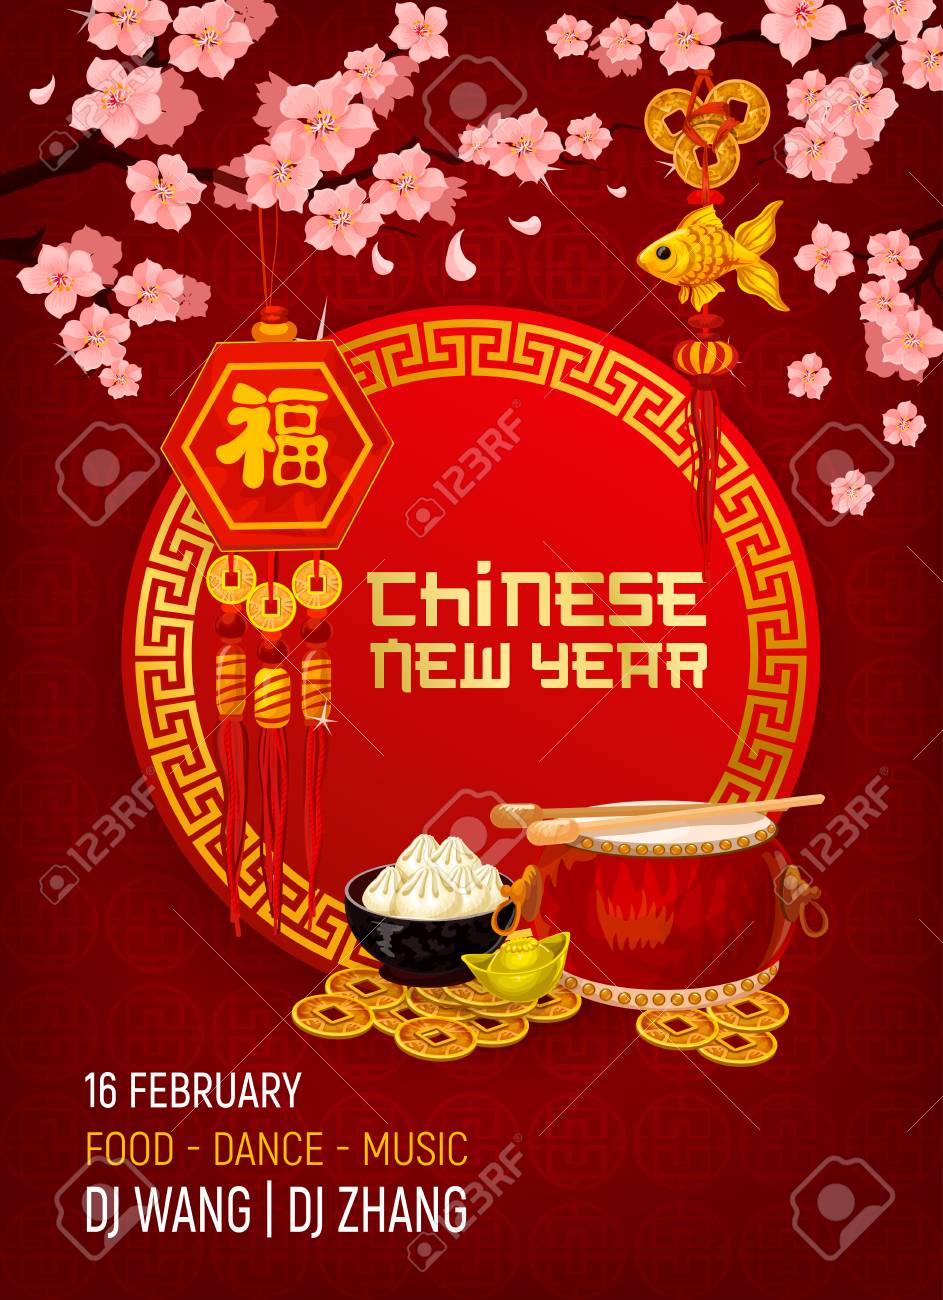 Chinese New Year Holiday Party Invitation Card Design Template